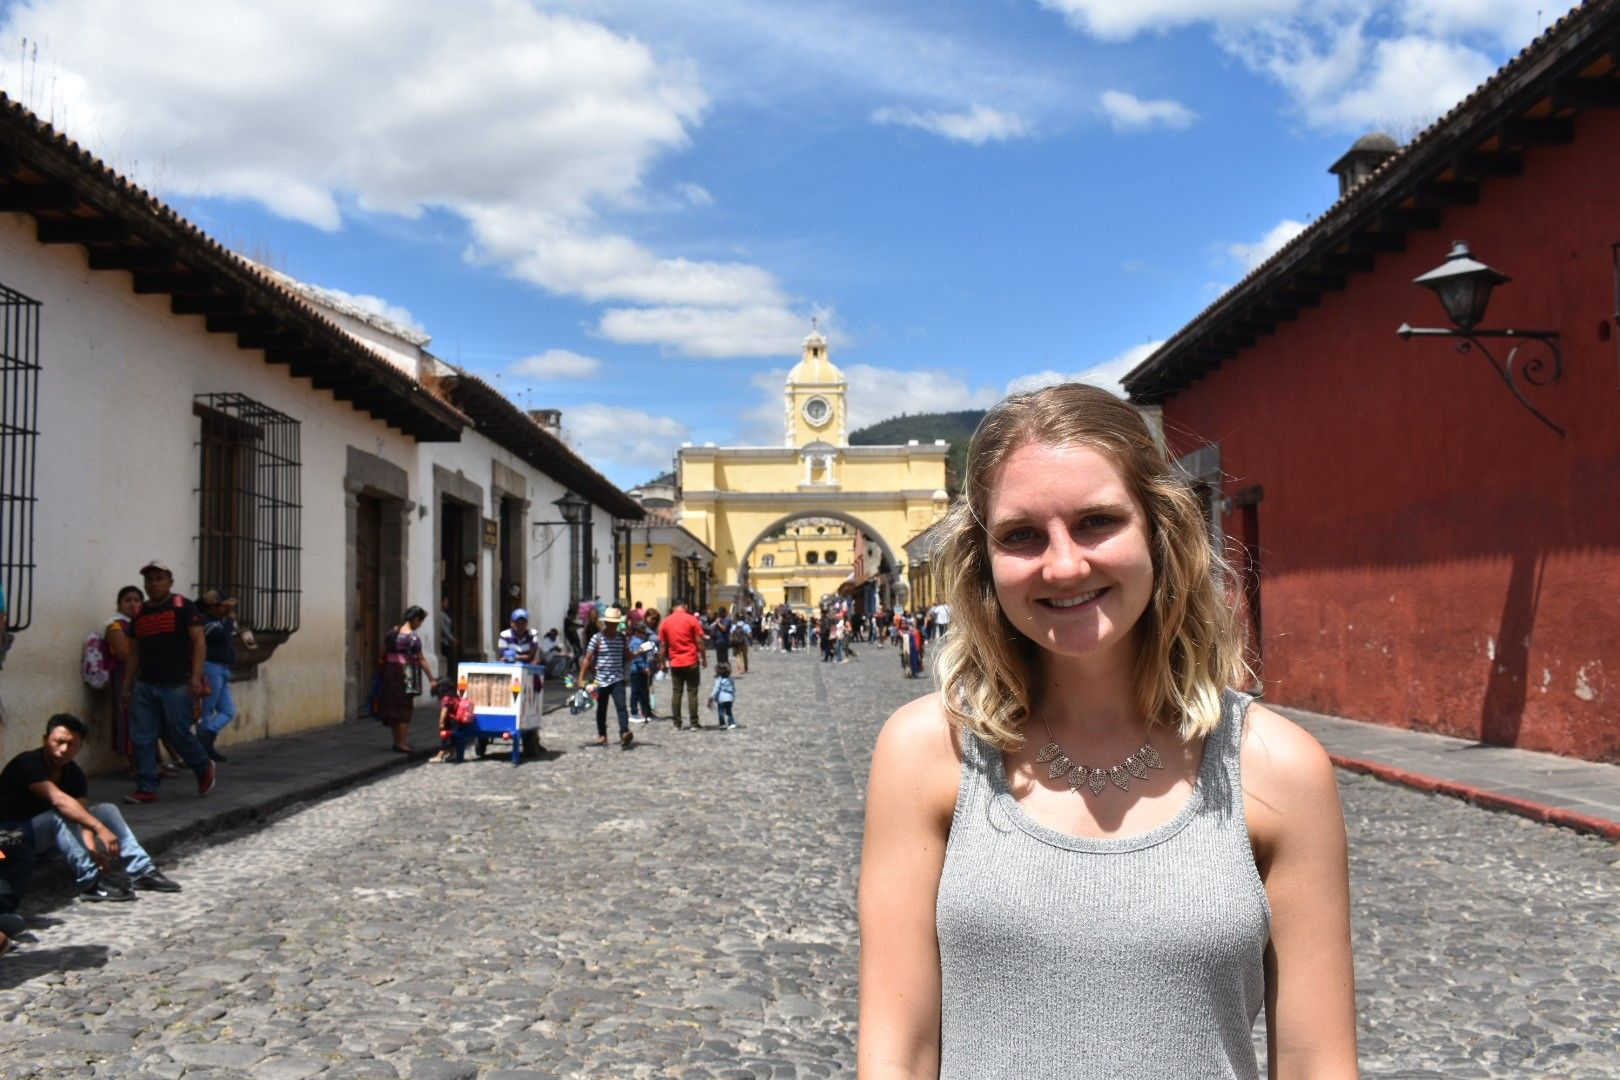 Lina standing in local street in Guatemala